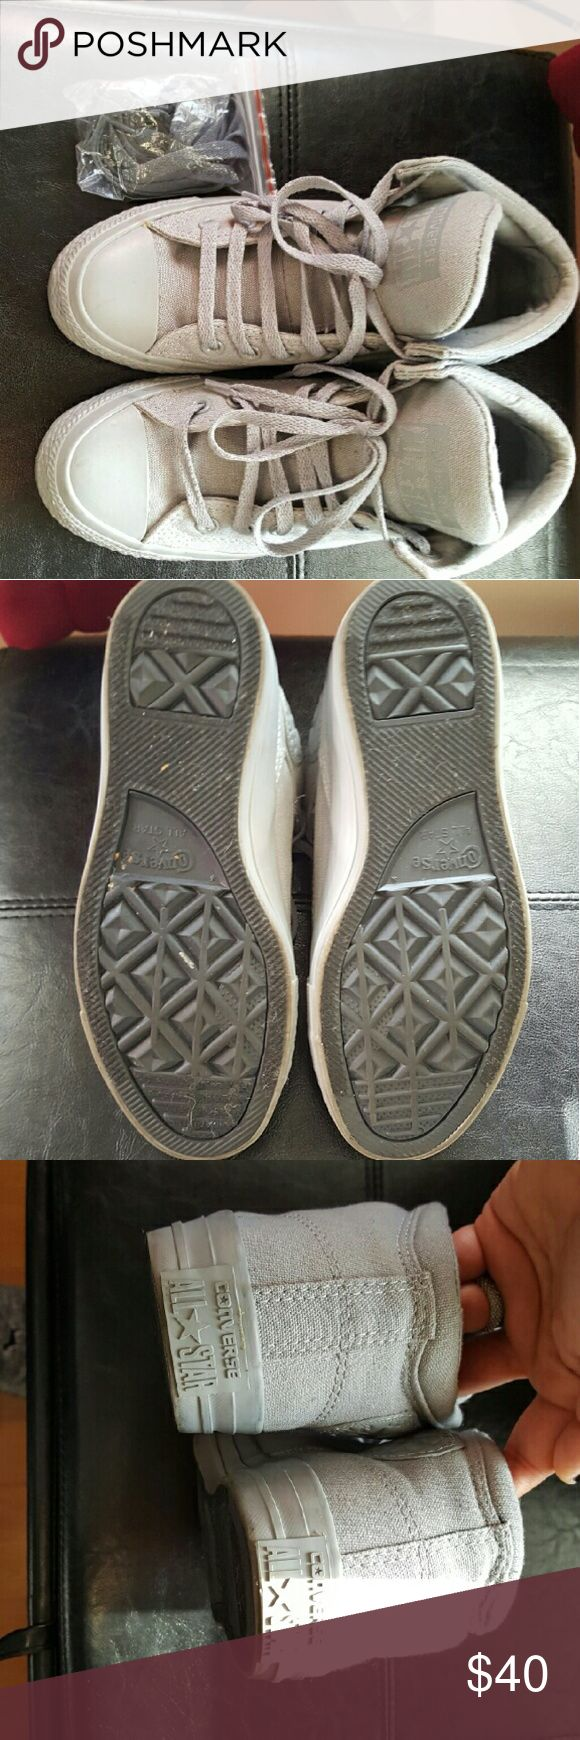 Messy_Boutiqu3 - Grey High Top Converse - Womens Size 7; Men's Size 5 - Worn a few times. - Comes with extra pair of laces - All Grey Converse Shoes Sneakers